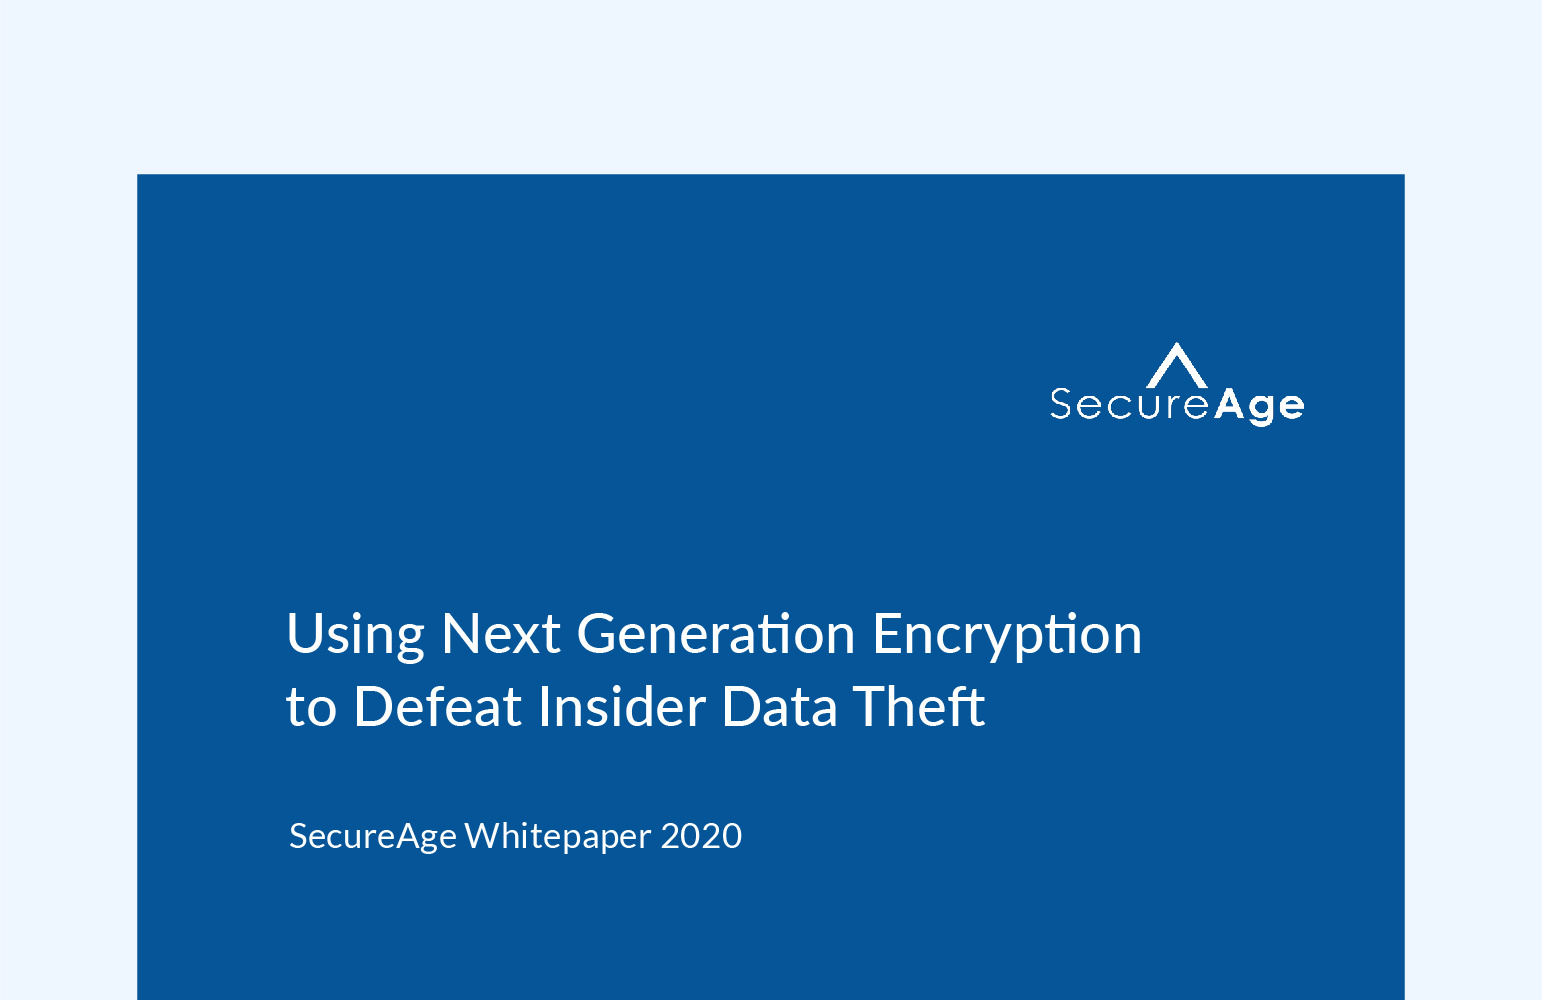 Using Next Generation Encryption to Defeat Insider Data Theft